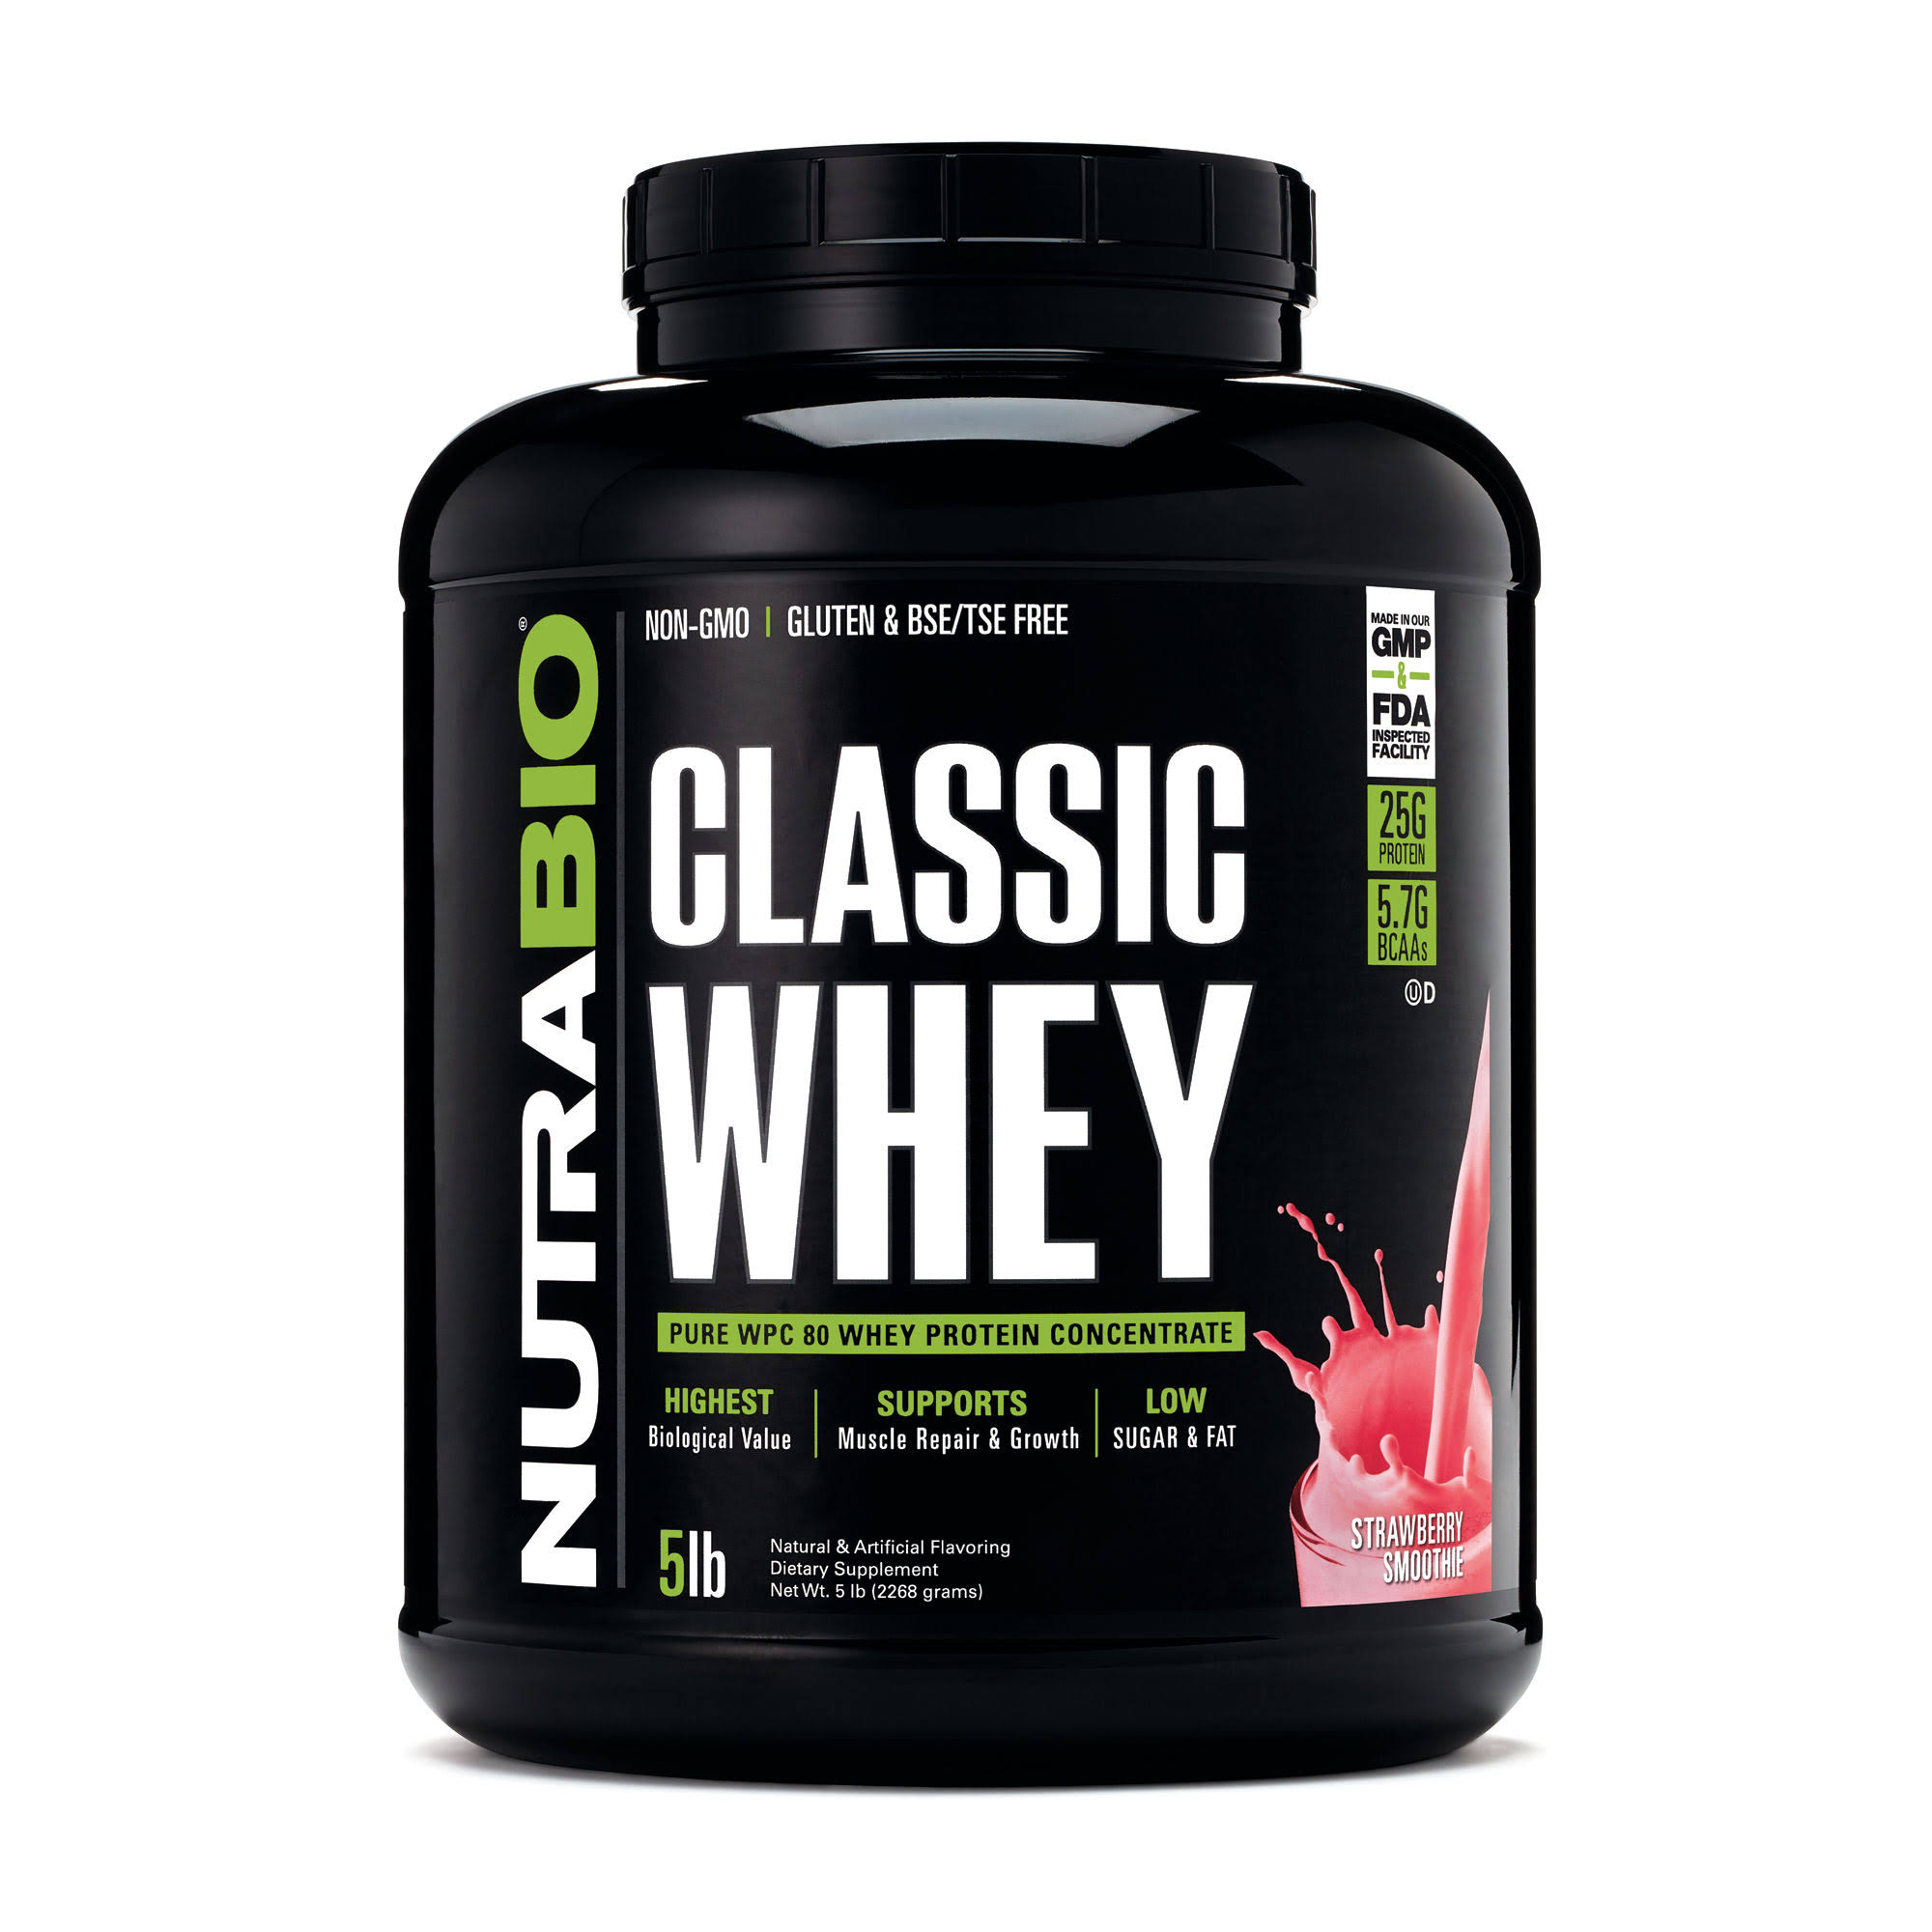 Nutrabio Whey Protein Concentrate Sport Nutrition - Strawberry, 5lbs